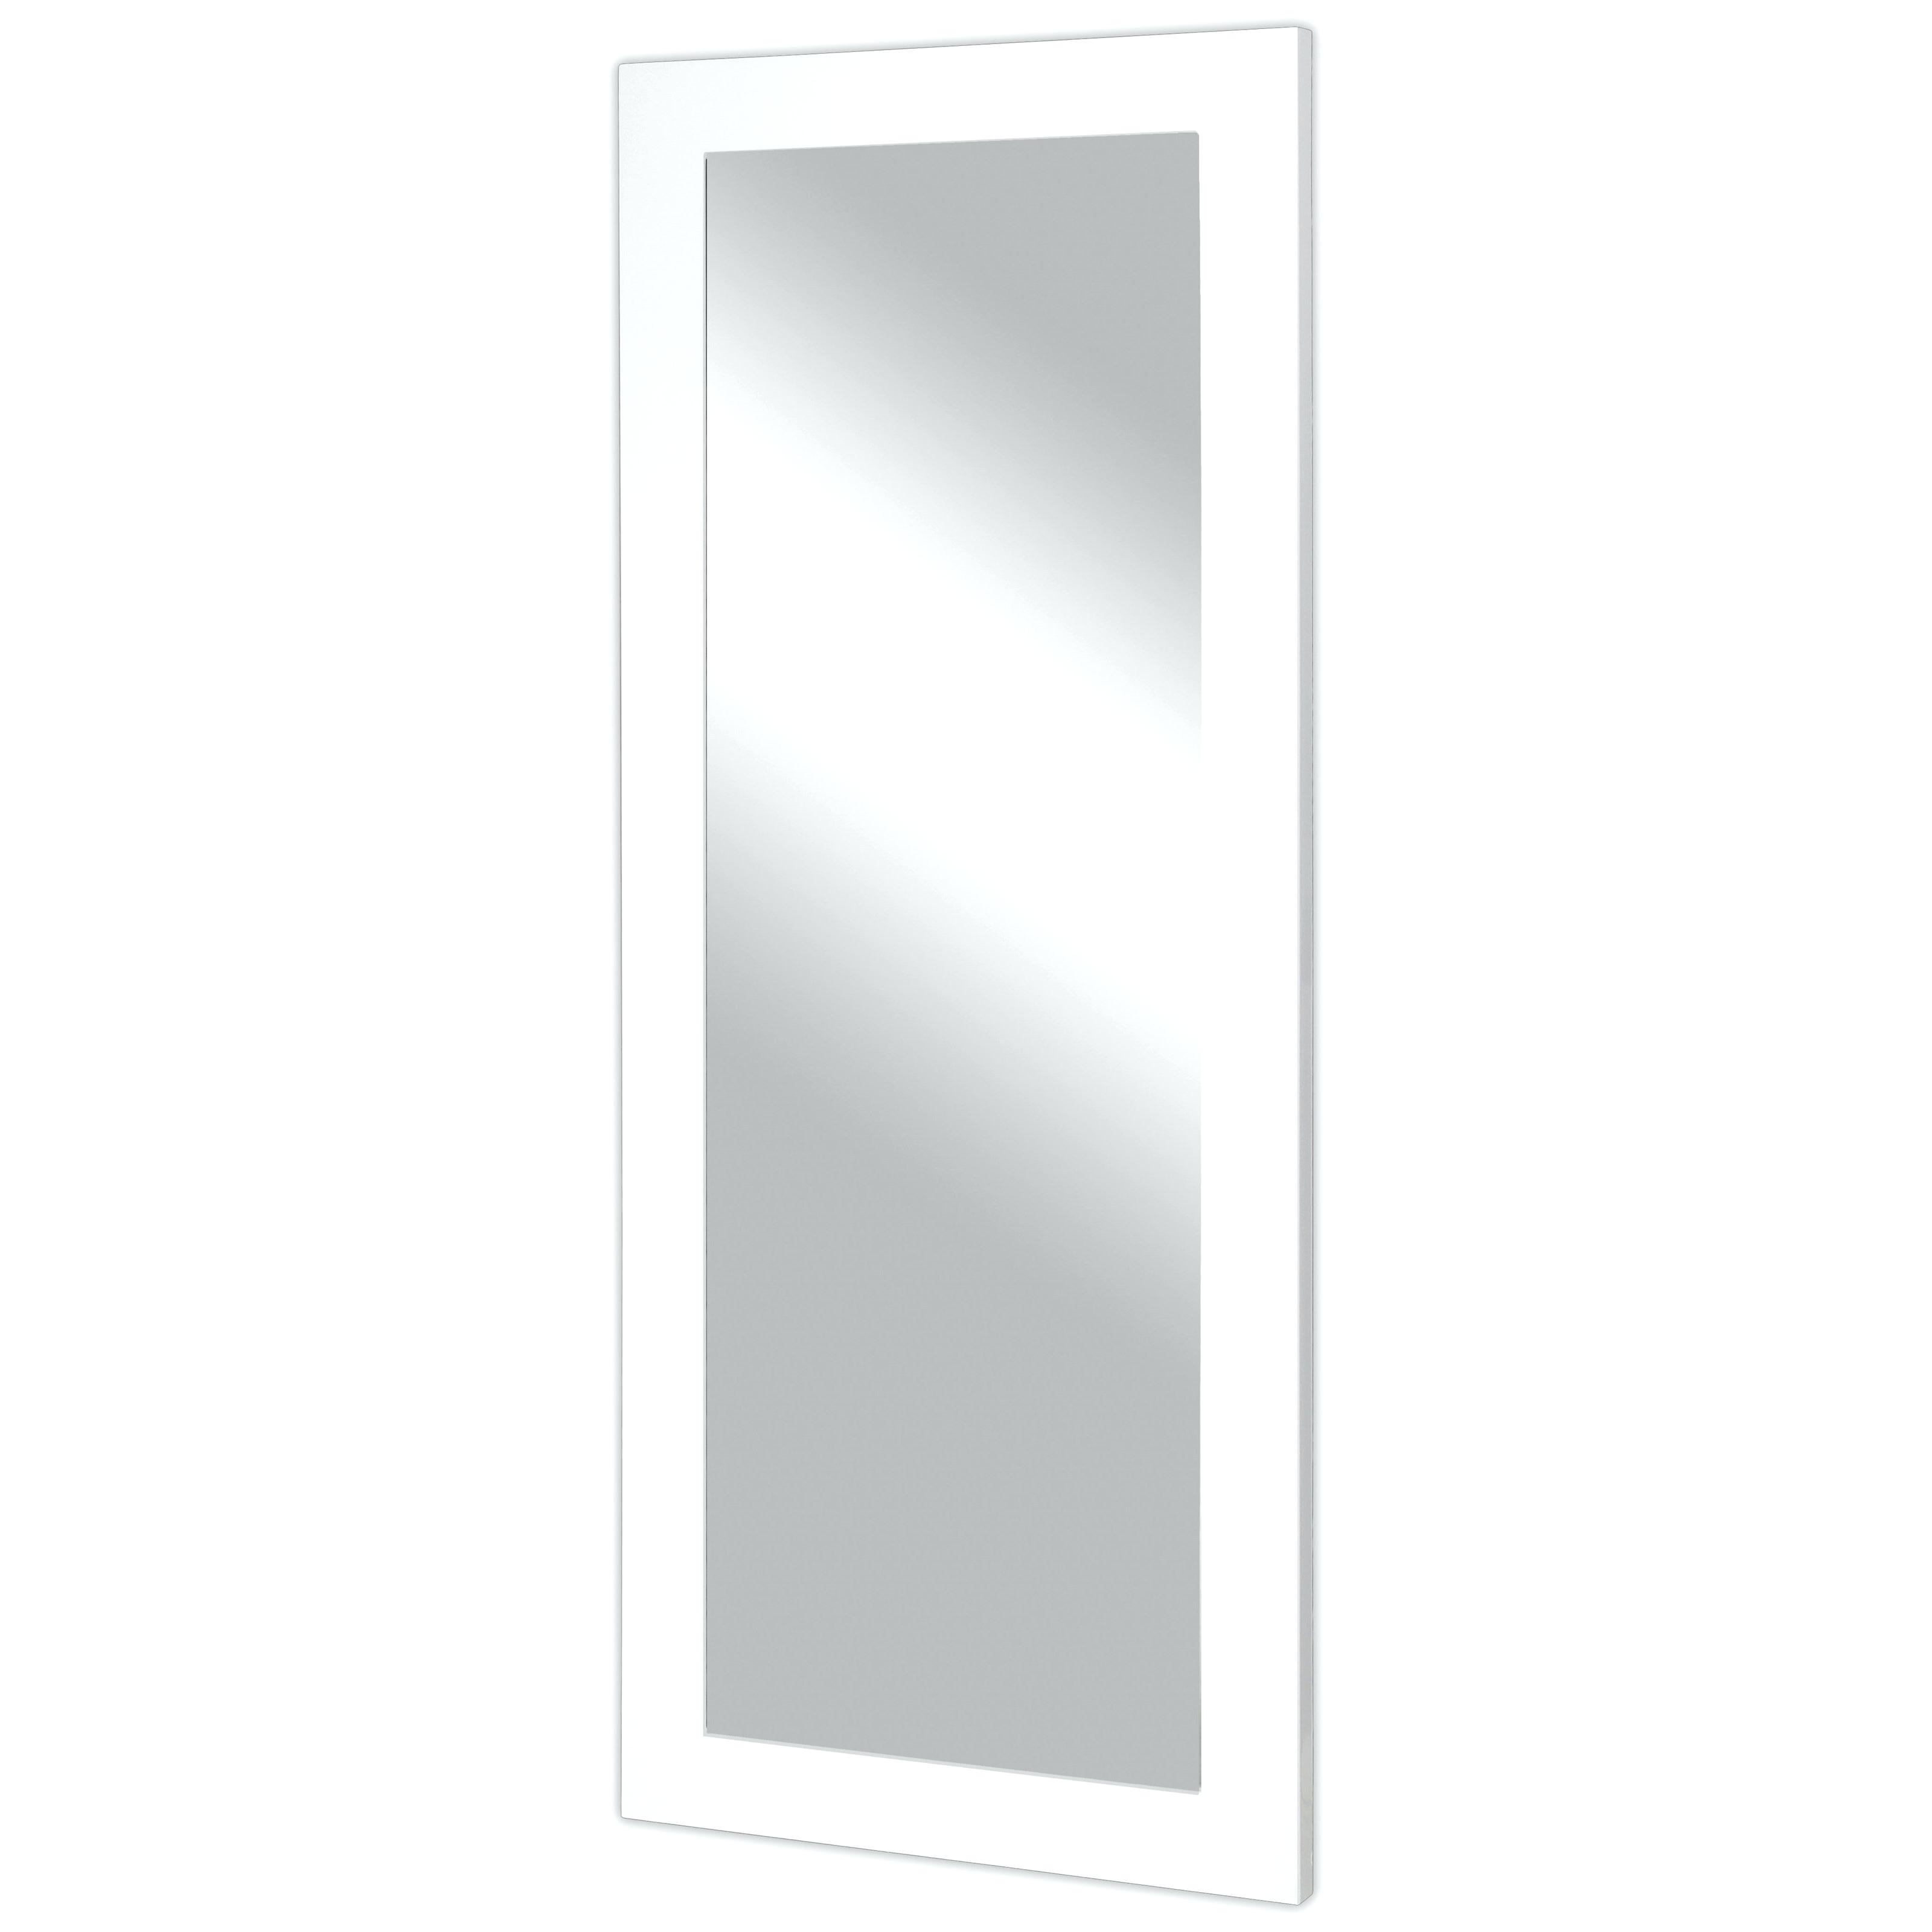 Well Liked Large Wall Mirrors Ikea Regarding Large White Wood Framed Mirrors Frame Wall Mirror Ikea New (View 19 of 20)